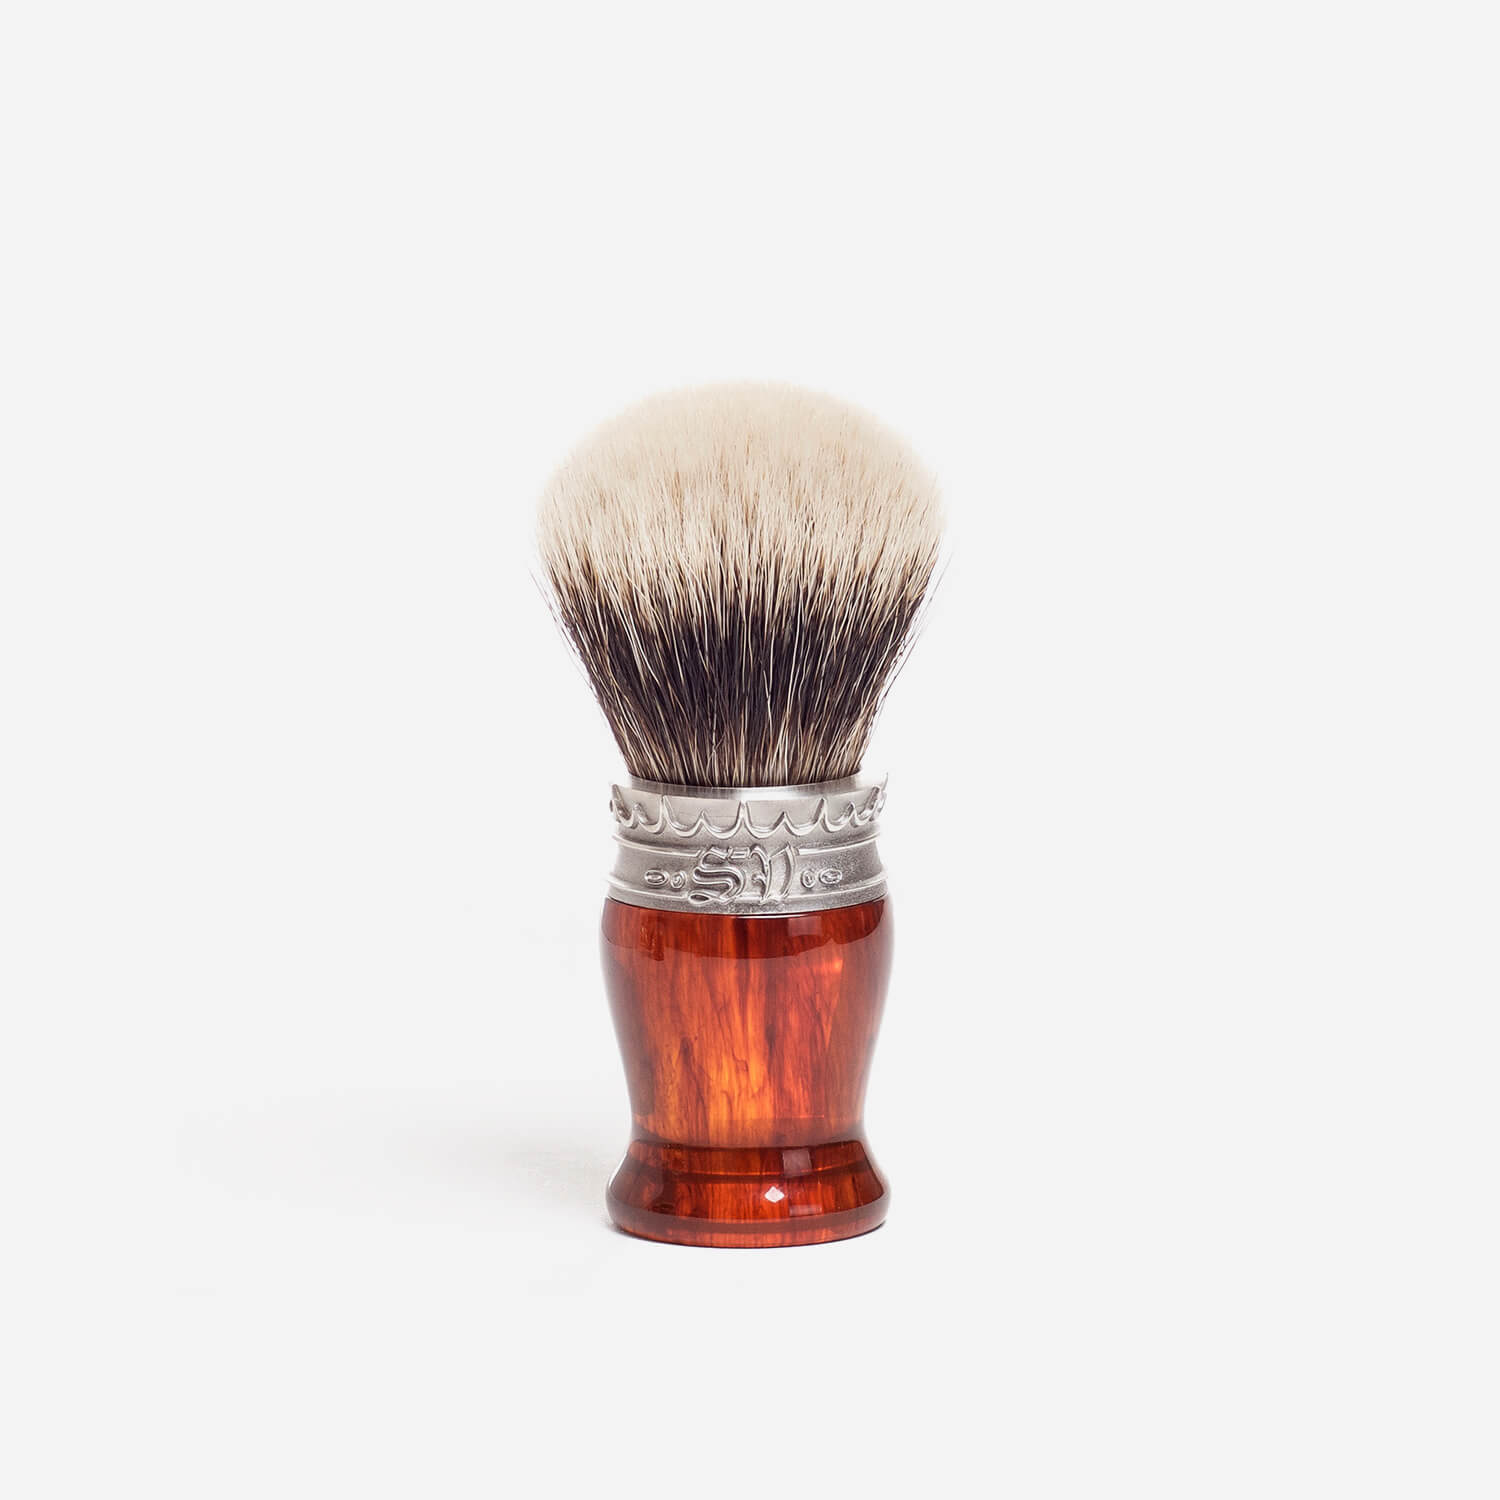 Saponificio Varesino White Badger Shaving Brush with Turtle Shell Handle